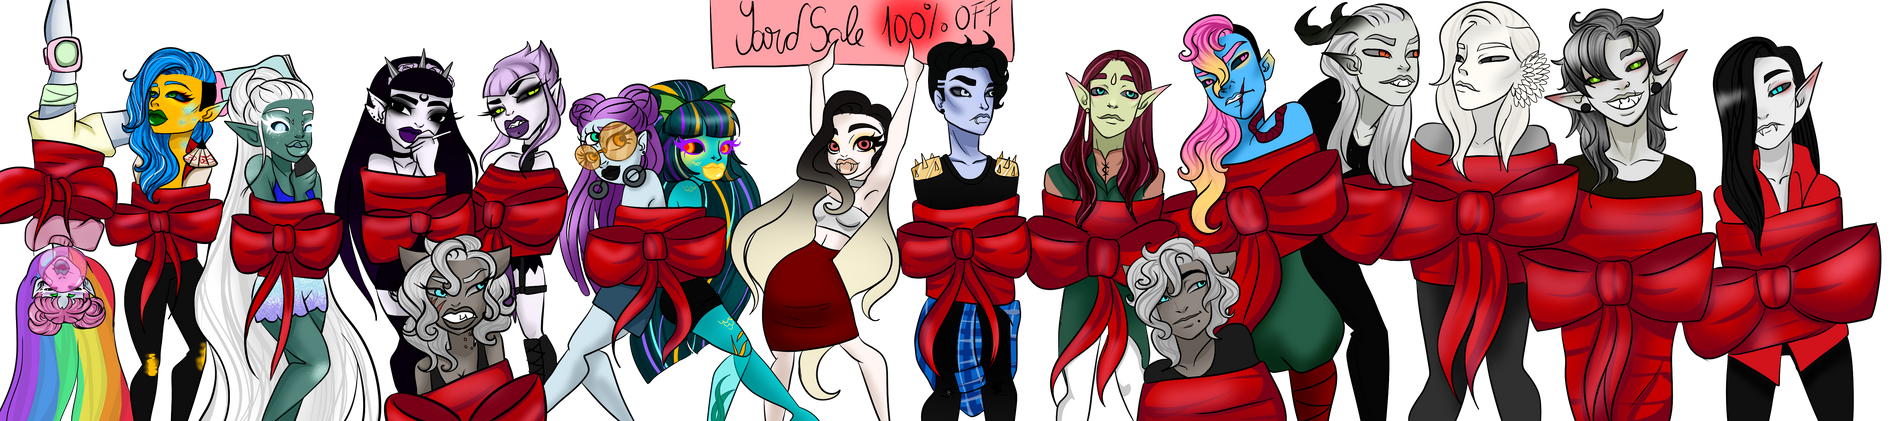 Yard Sale 100% OFF by egoetrexmeus